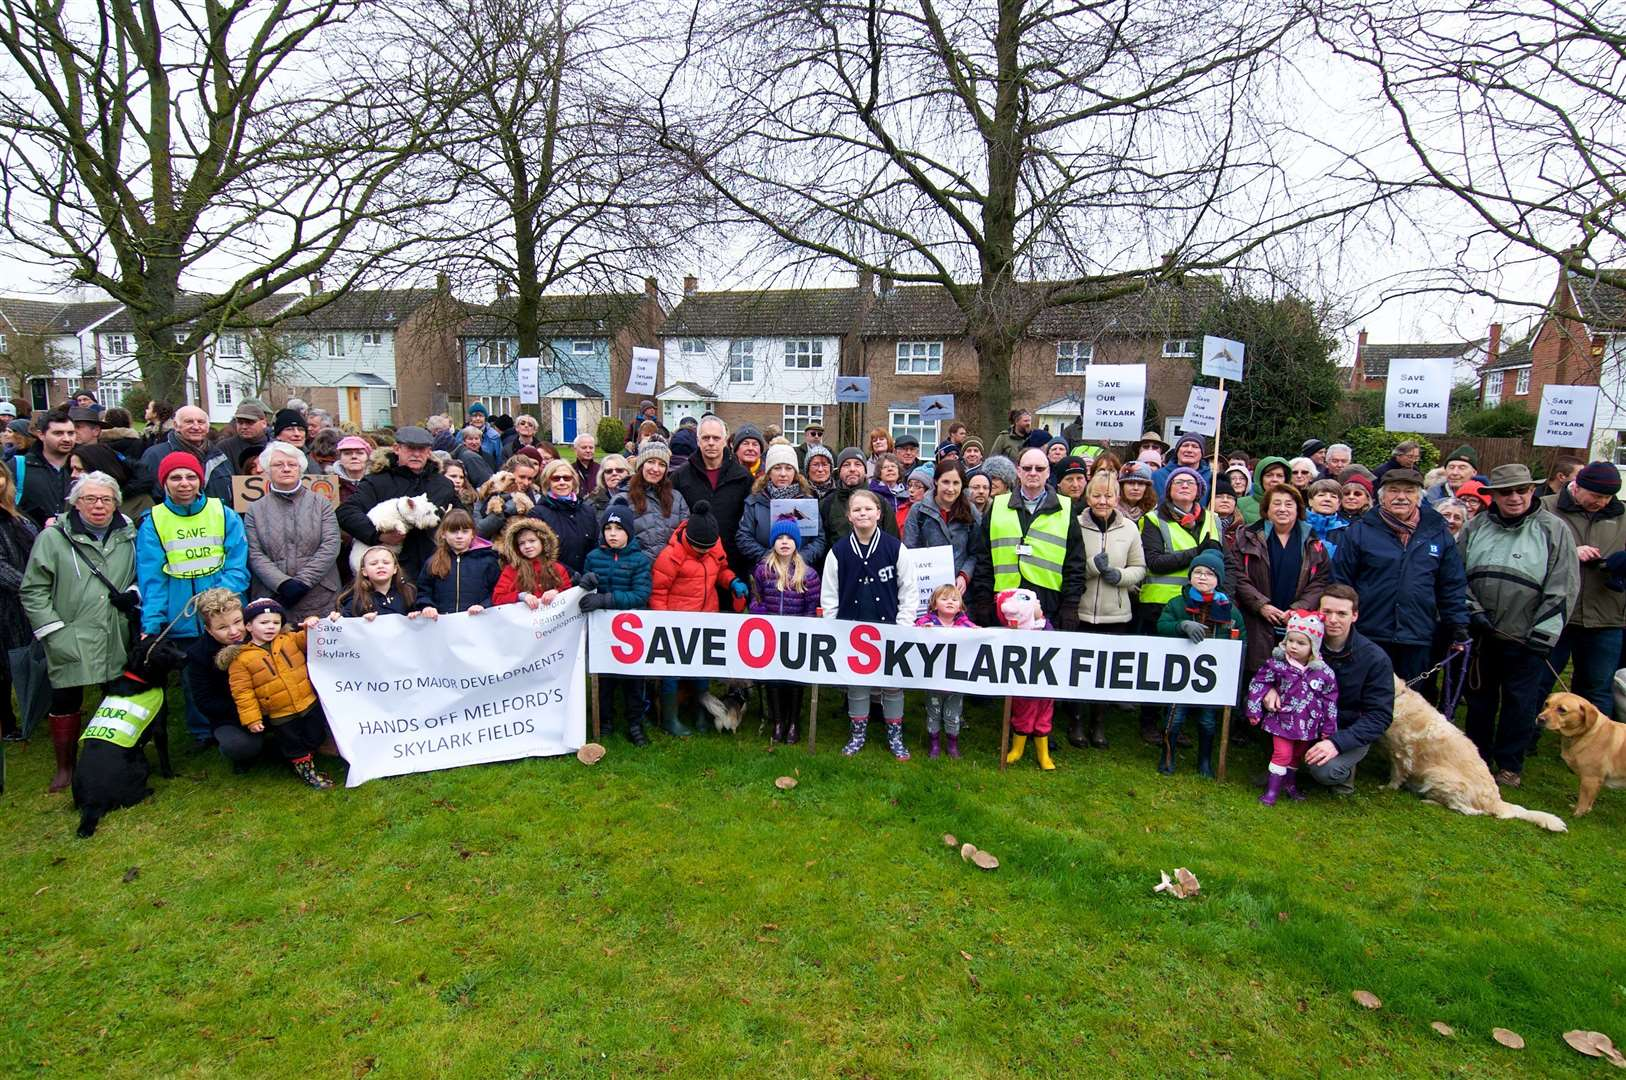 Long Melford, Suffolk. The Save Long Melford's Skylark Fields community action group is leading a walking tour of potential development sites in Long Melford, to highlight the issues of over-development...Picture: MARK BULLIMORE PHOTOGRAPHY. (5640061)